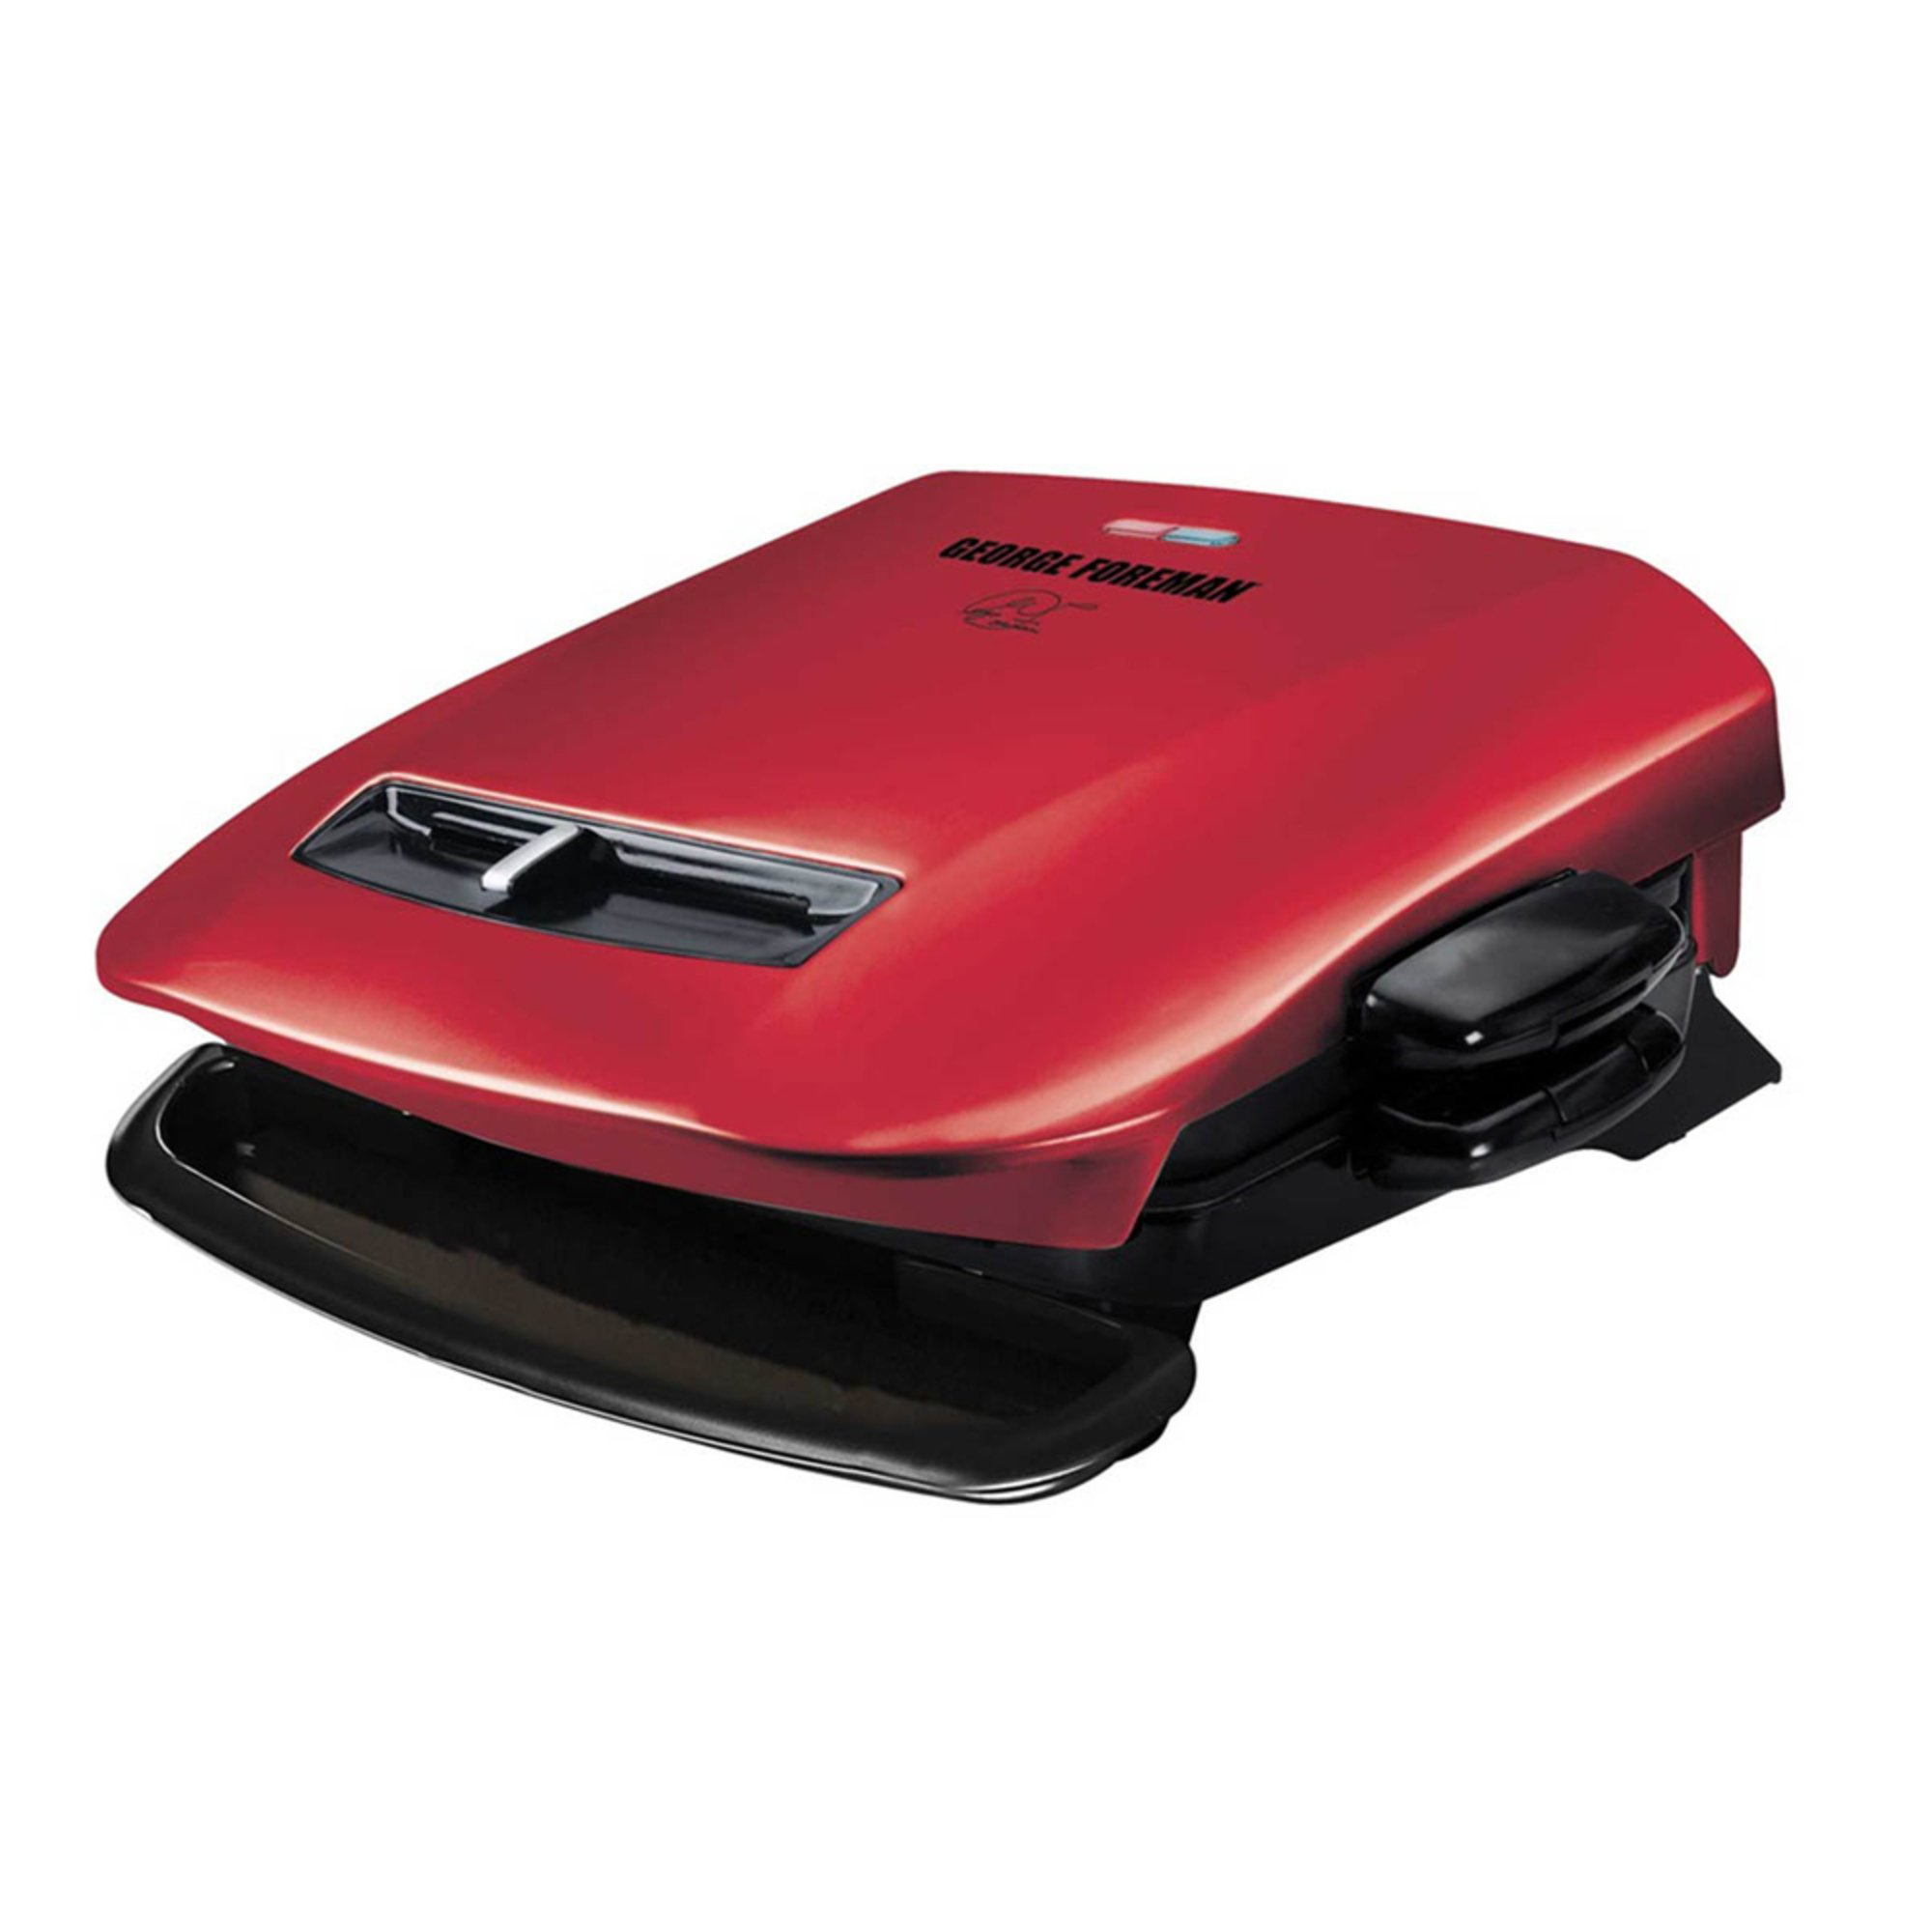 Grille Panini George Foreman 5 Serving Removable Plate Grill And Panini Press Grp2841r